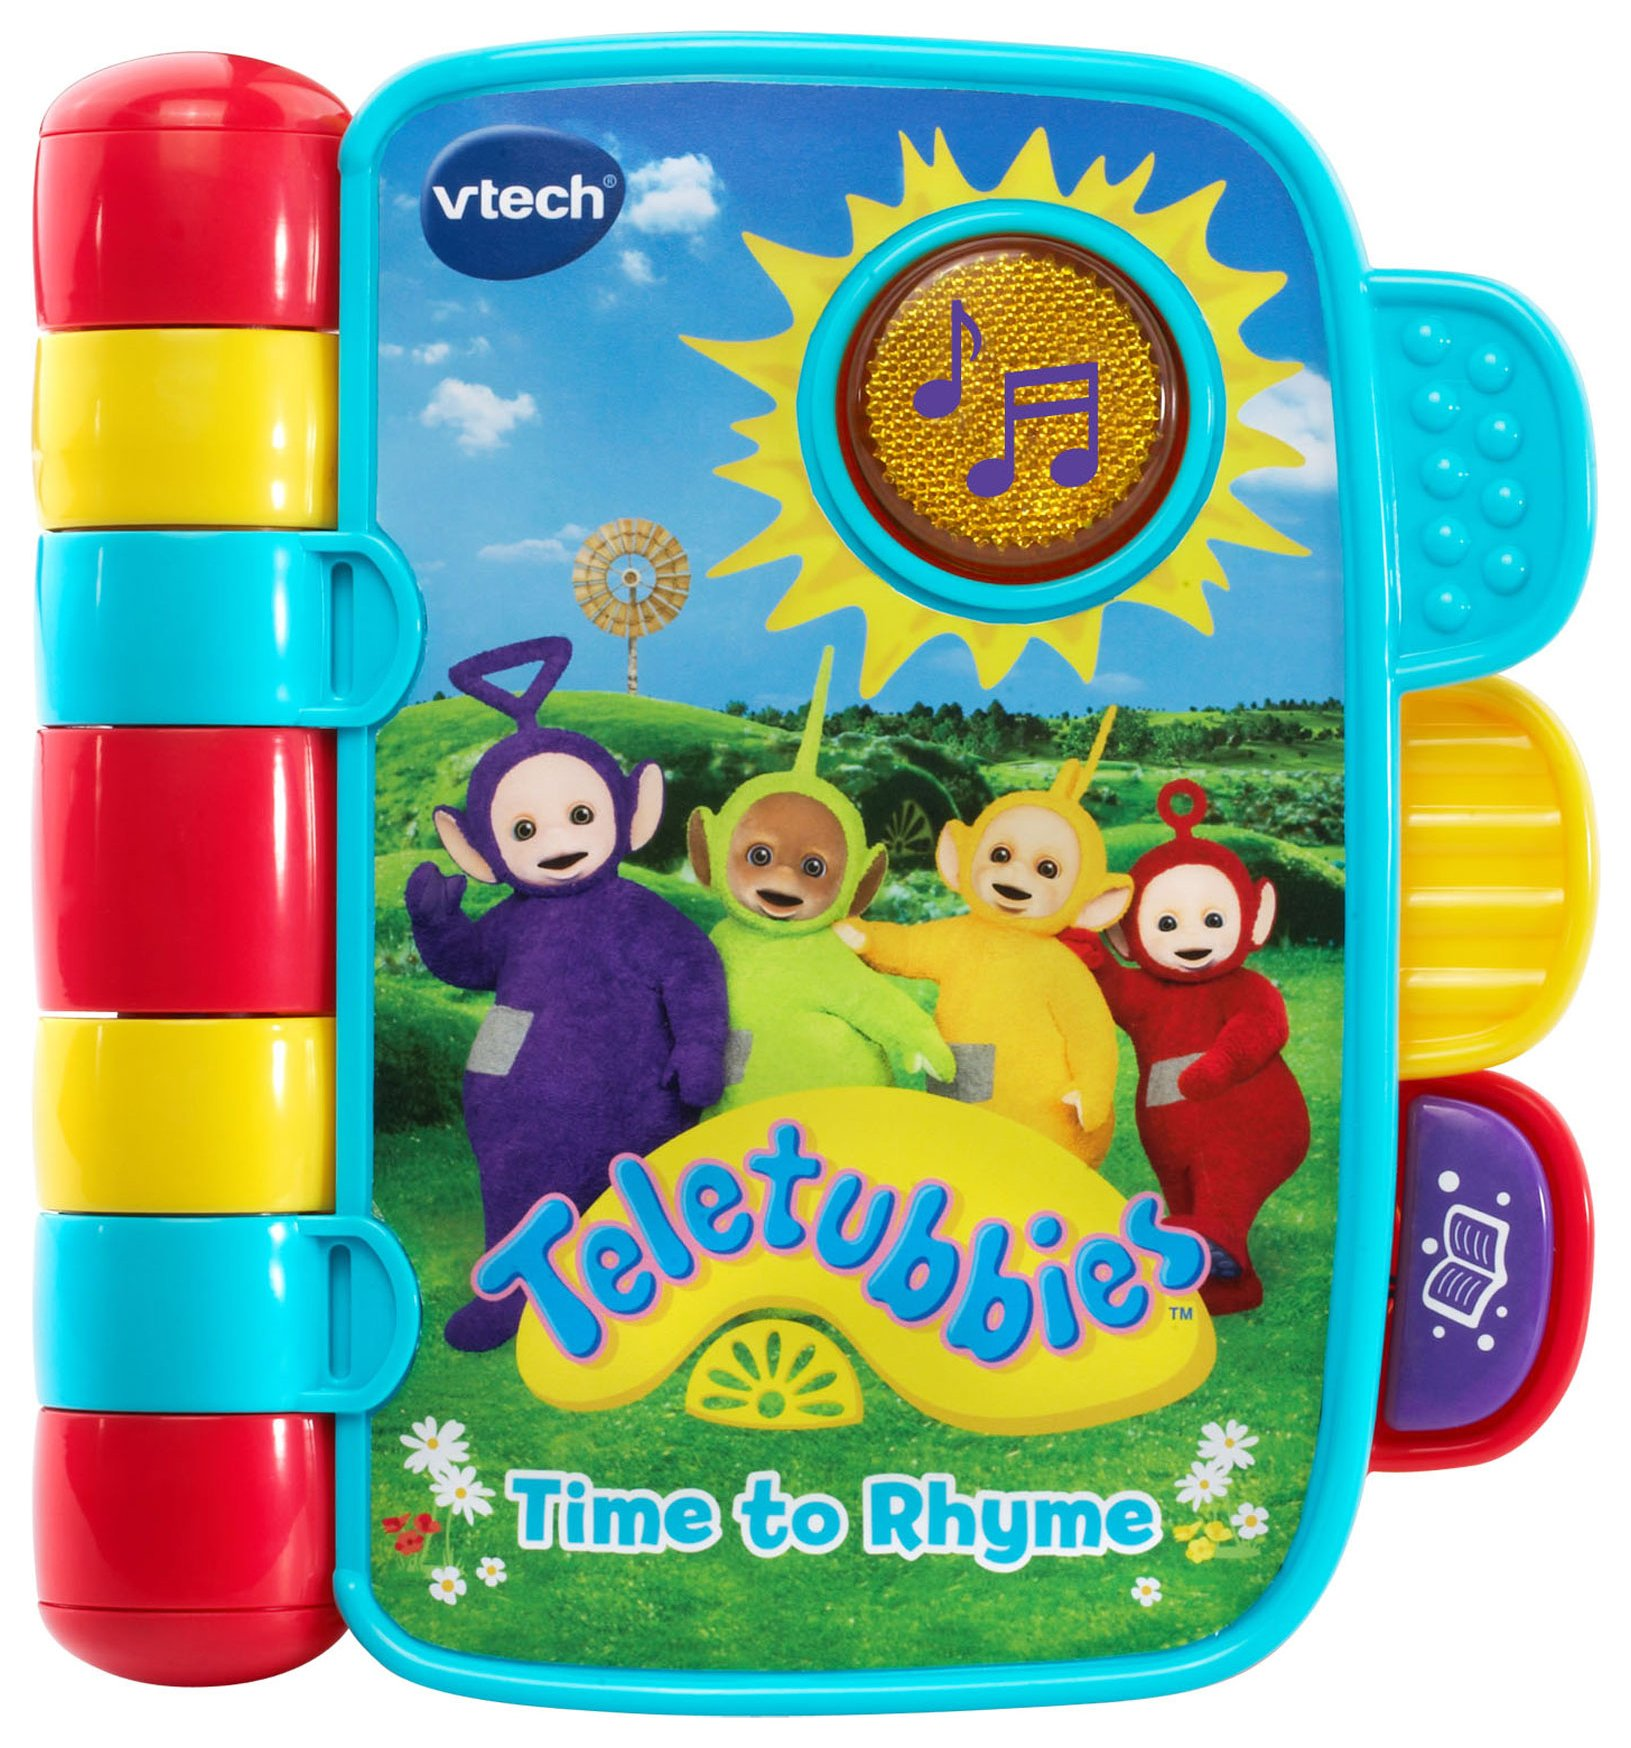 VTech Teletubbies Time To Rhyme from VTech